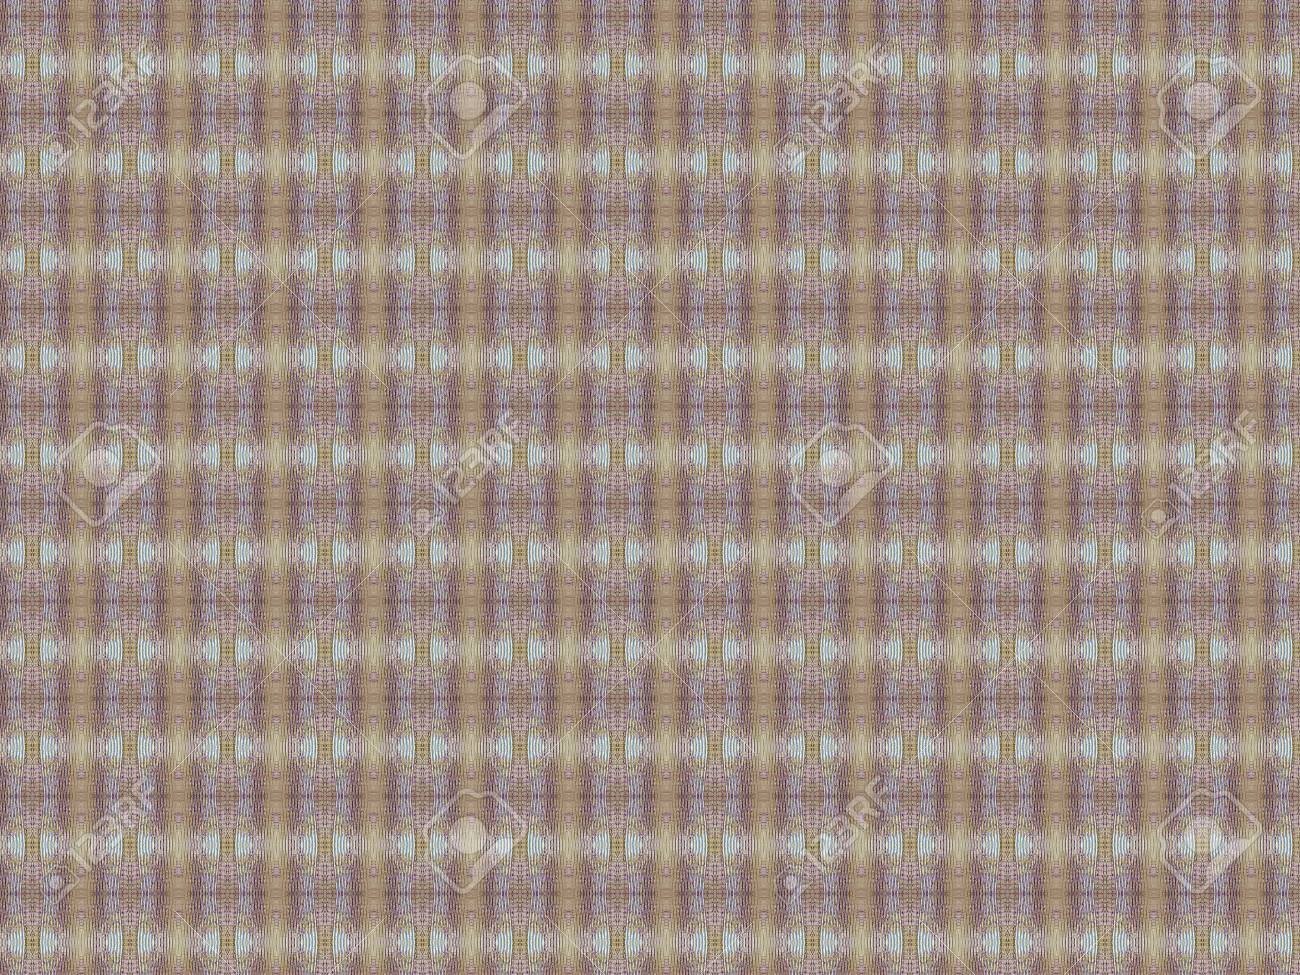 Vintage shabby background with classy patterns Stock Photo - 17214786